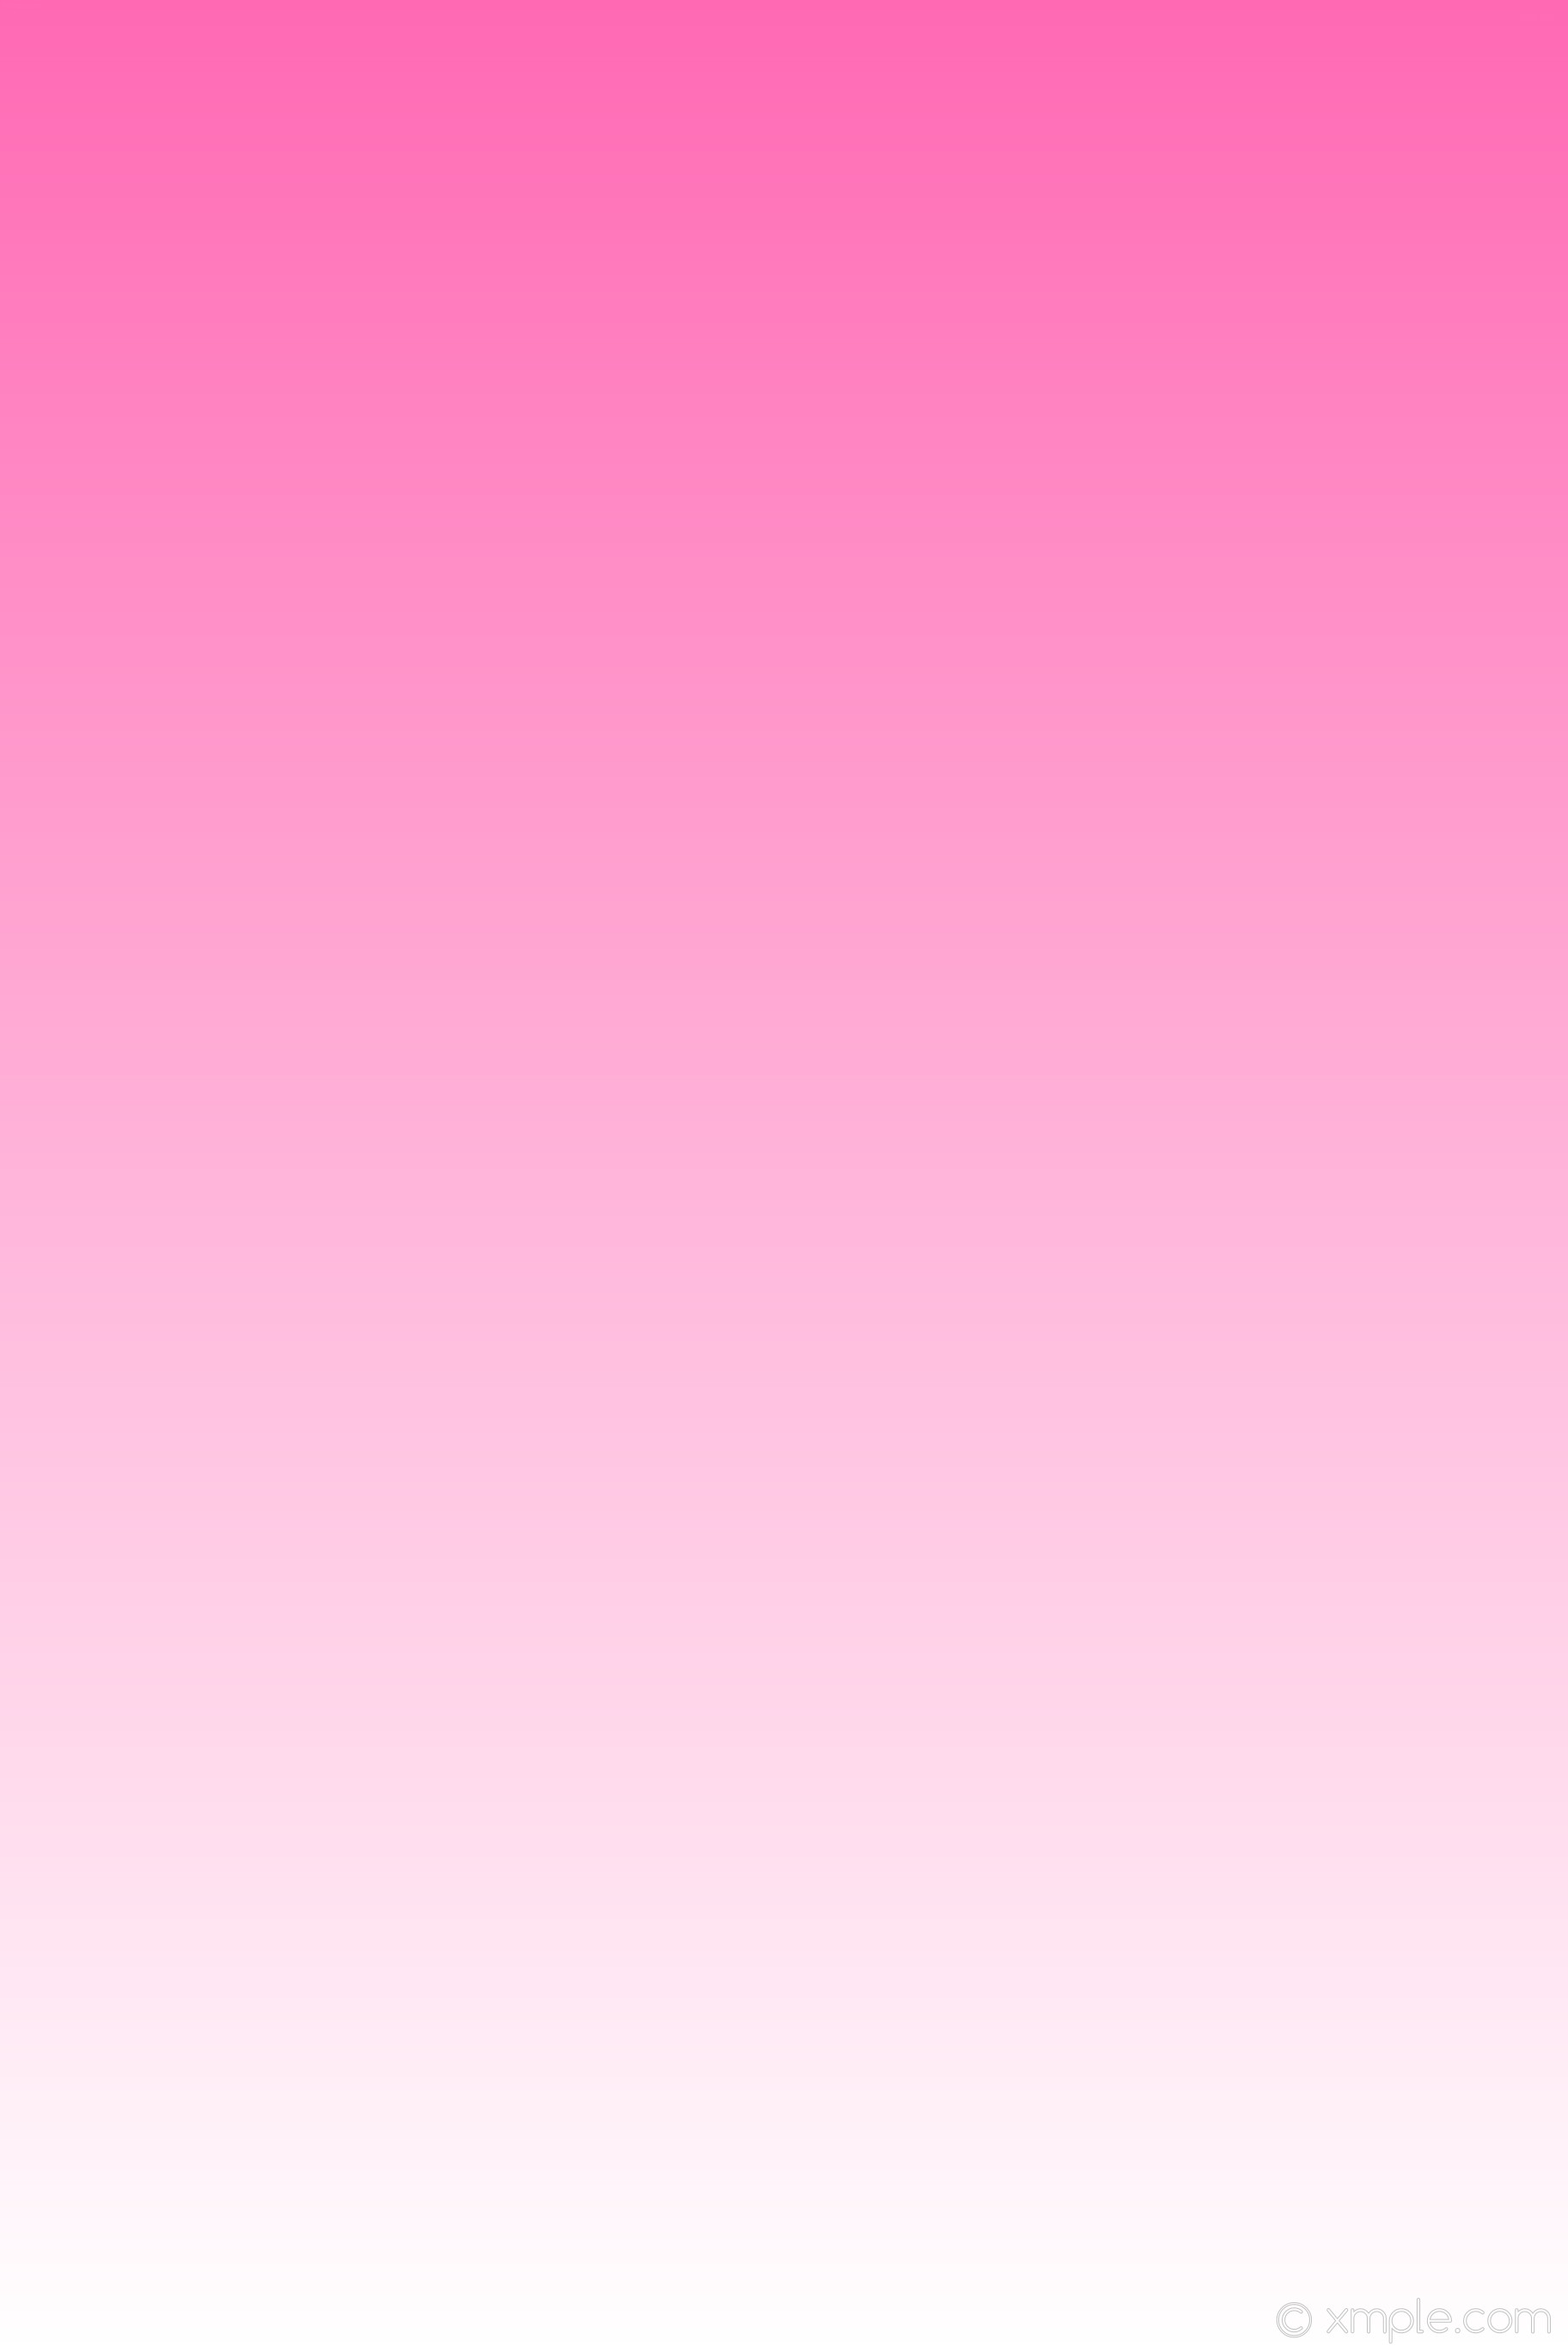 Black To Light Pink Ombre Pink Ombre Wallpaper (...